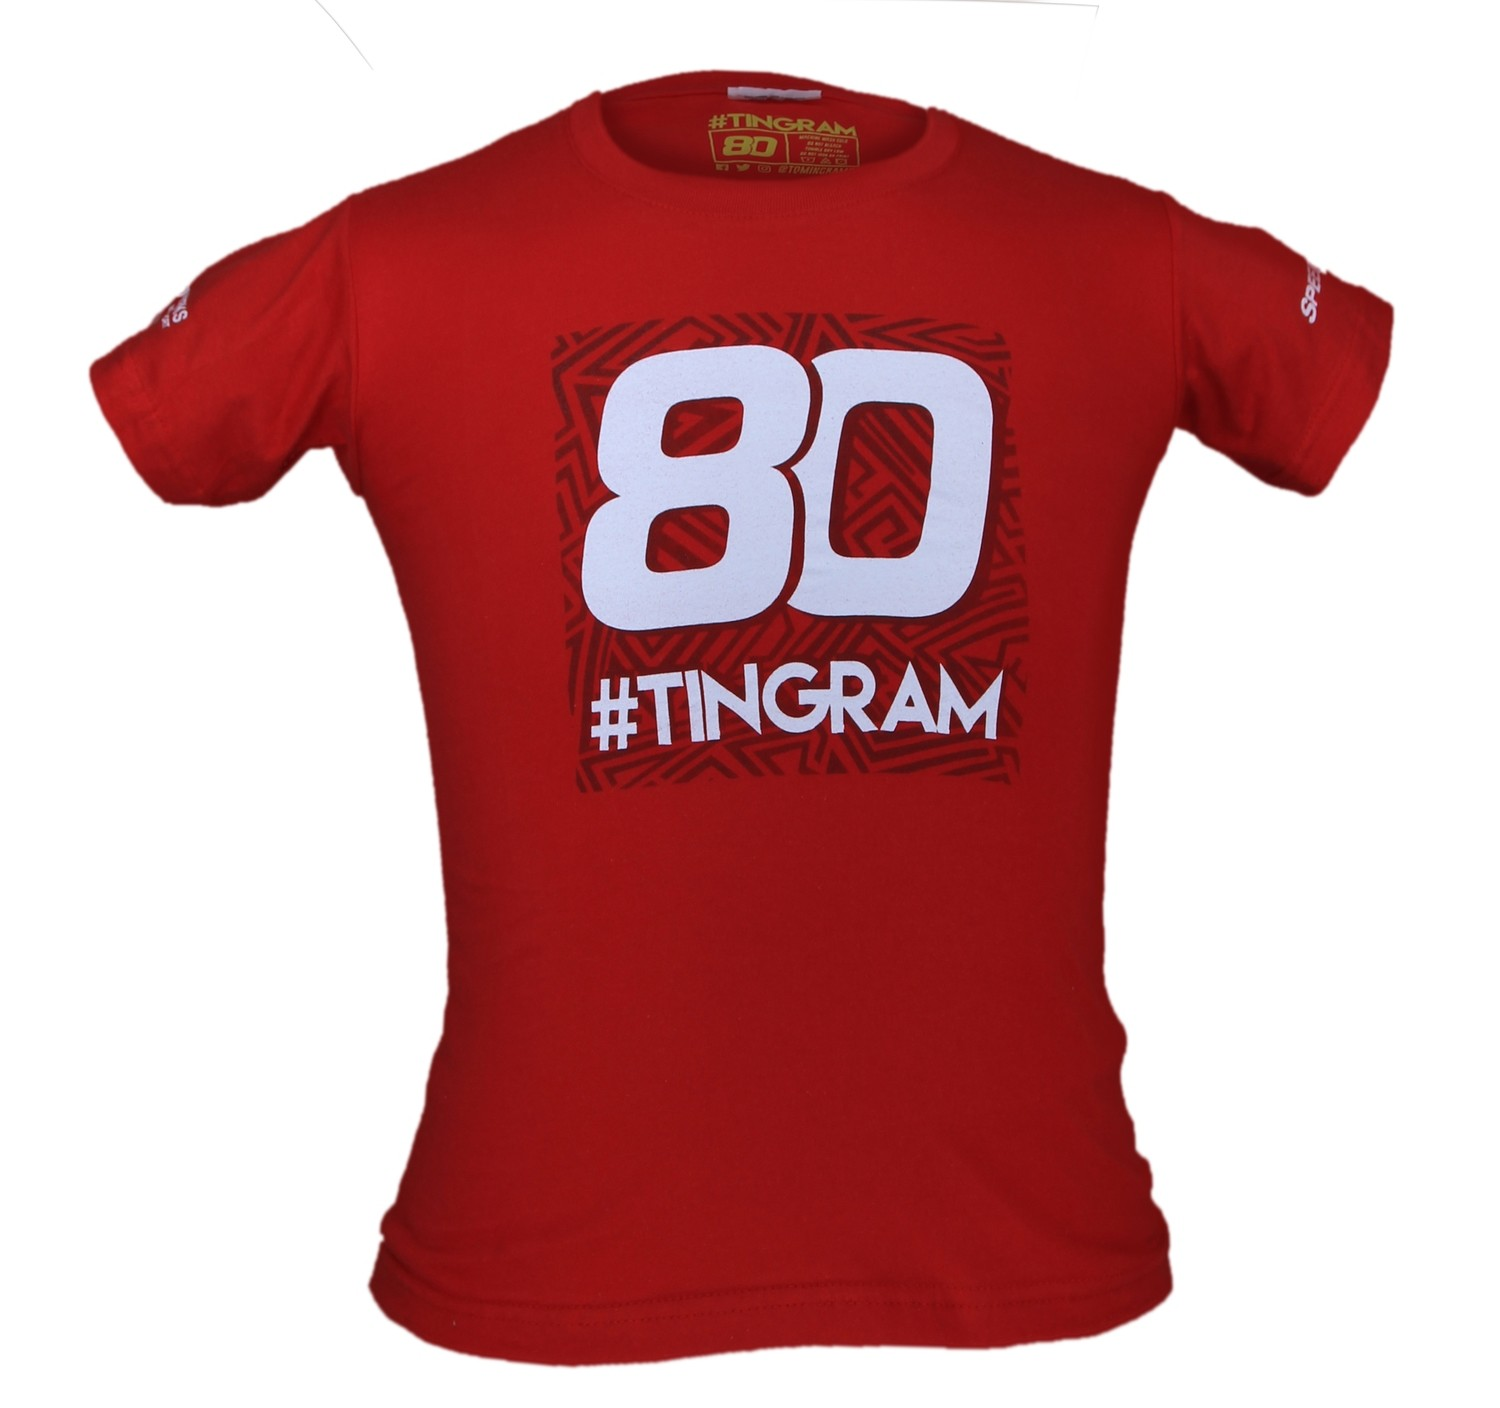 2019 #Tingram Kids T-shirt